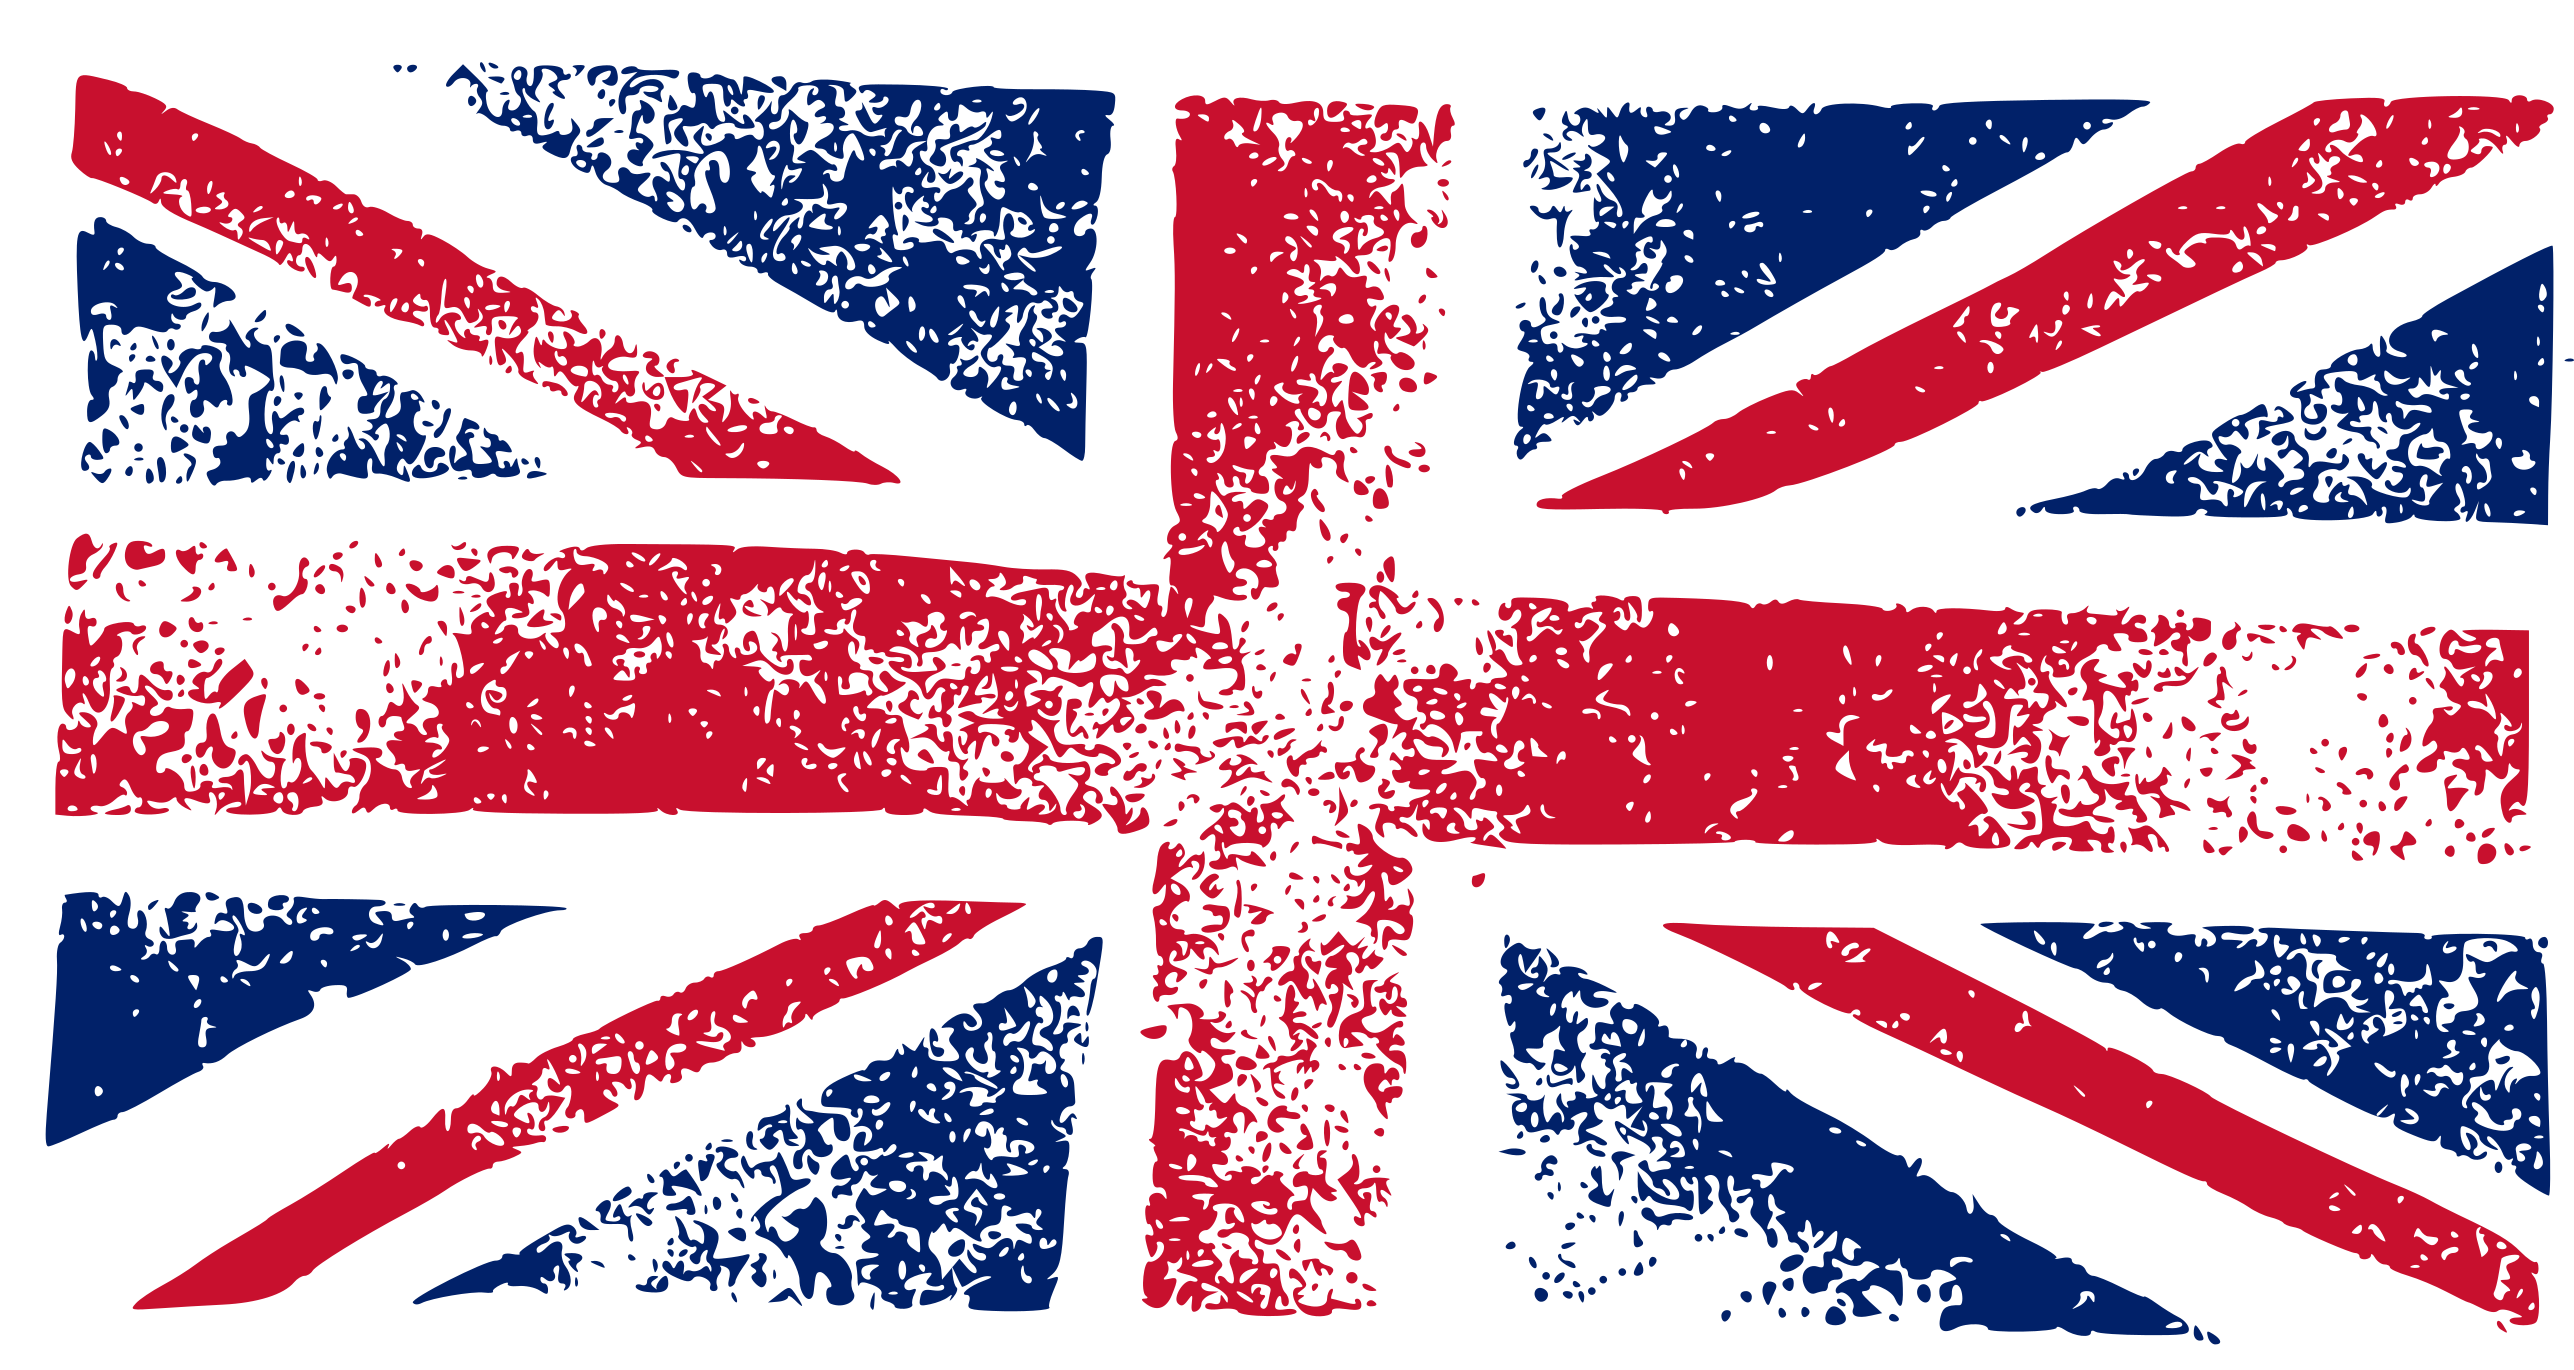 grunge-britain-uk-flag-6.png